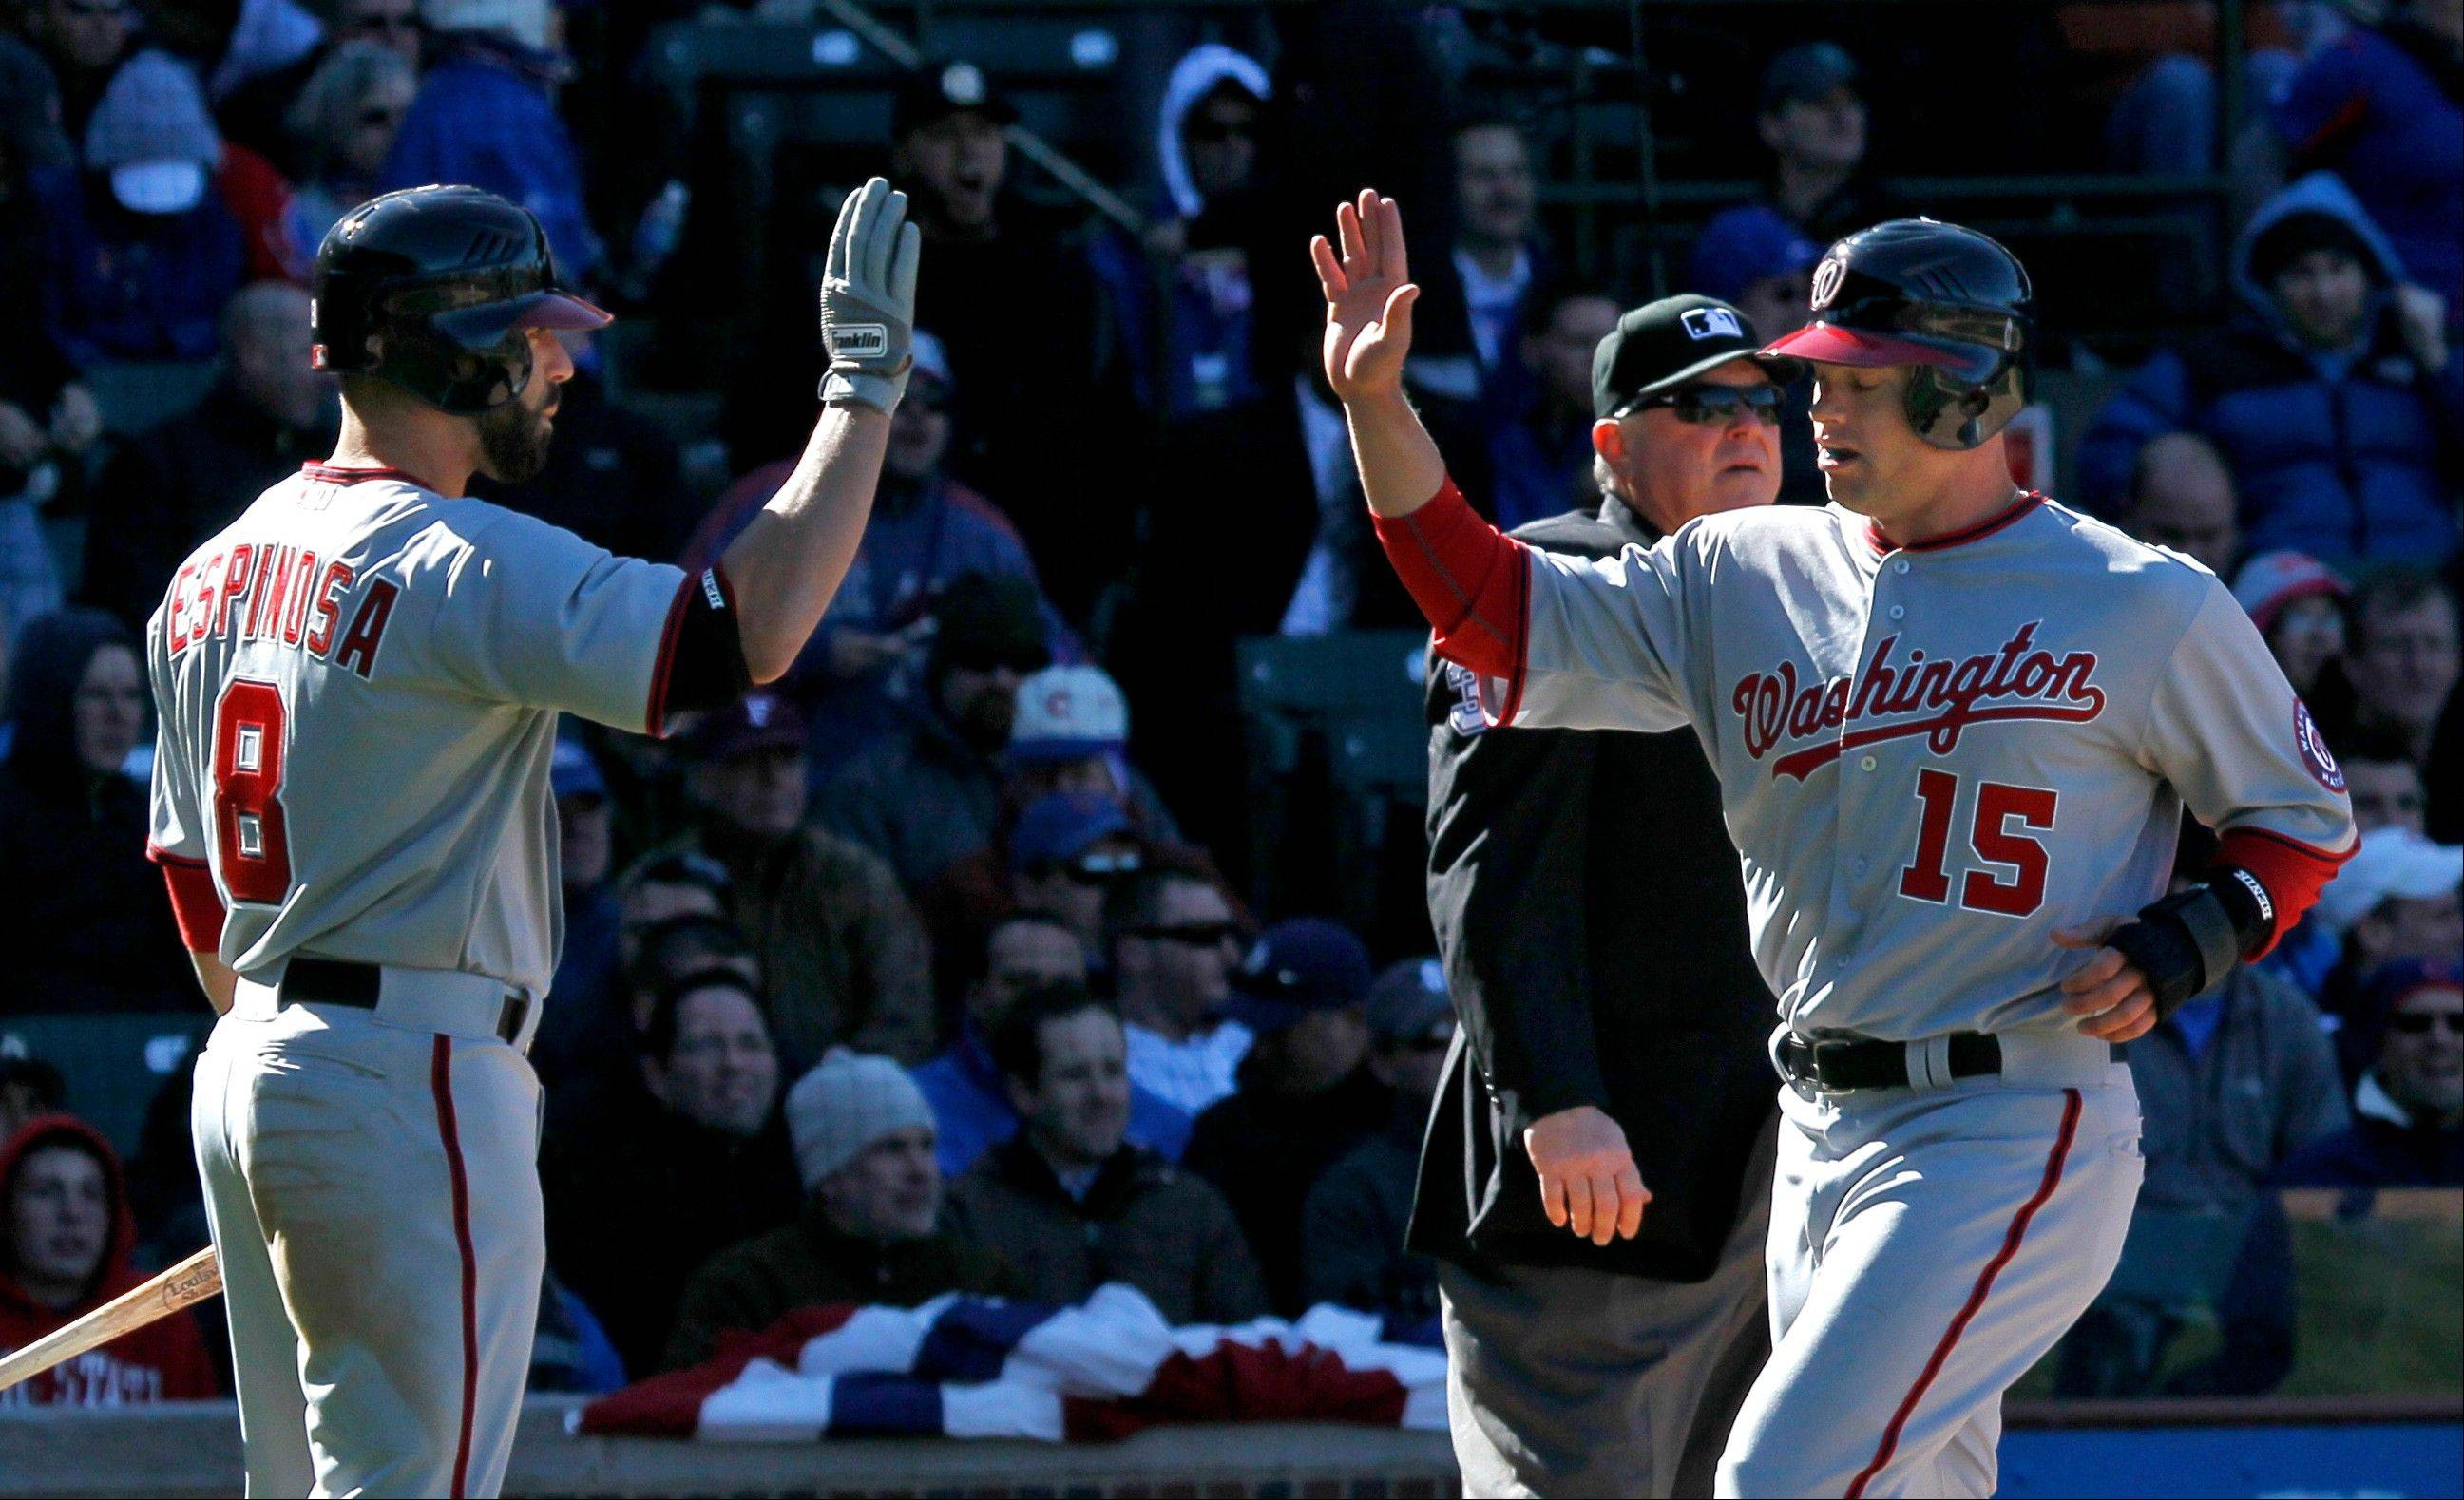 Washington Nationals' Danny Espinosa (8) greets pinch runner Brett Carroll, after Carroll scored on a hit by Ian Desmond, during the ninth inning of an opening day baseball game against the Chicago Cubs, Thursday, April 5, 2012, in Chicago. The Nationals won 2-1.